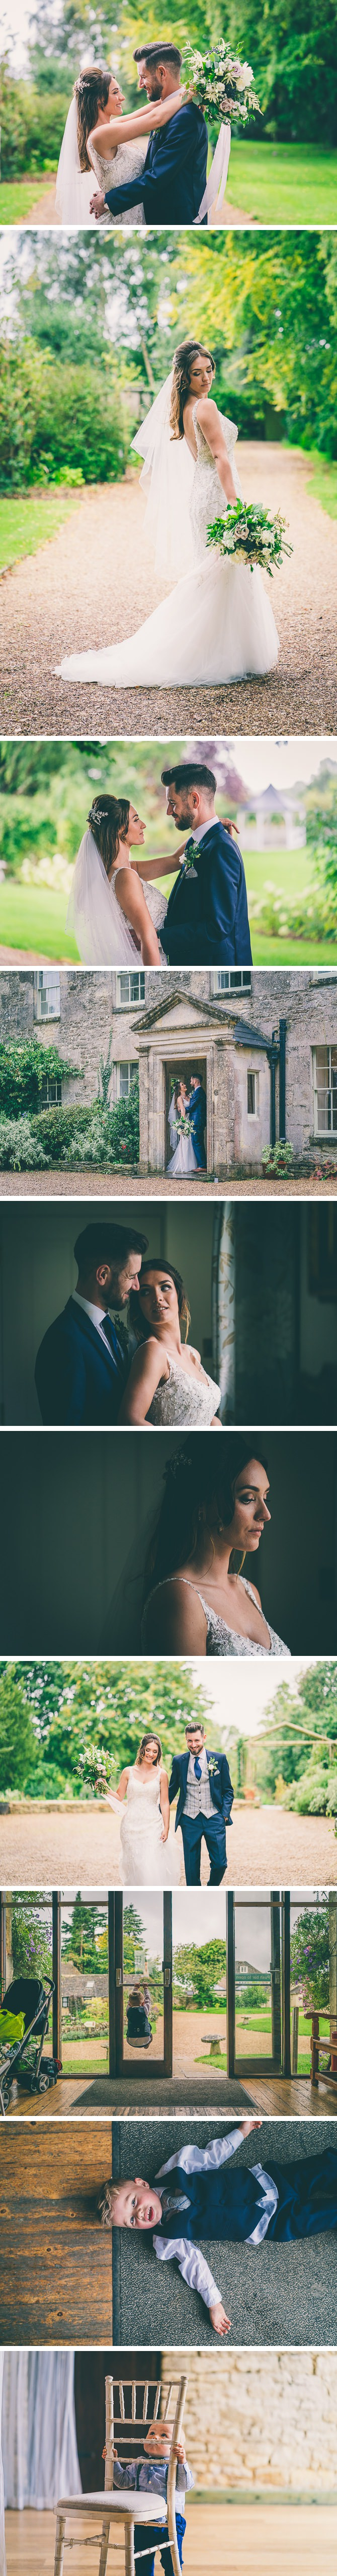 Bride and Groom Portrait Photos at Great Tythe Barn